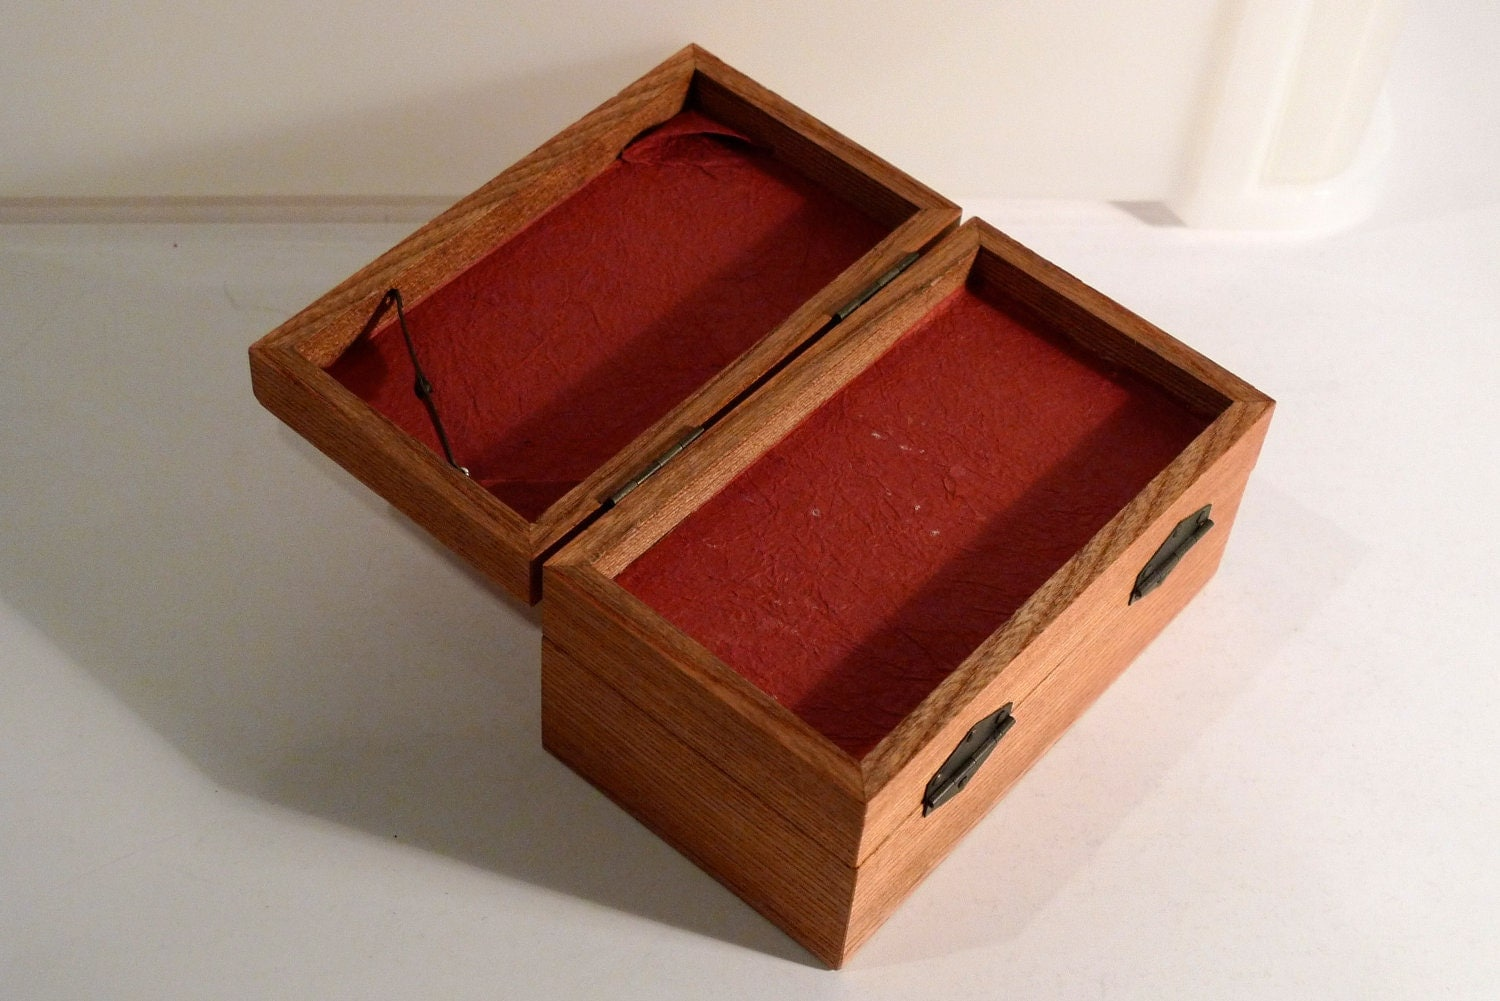 how to build a wooden box with secret compartment